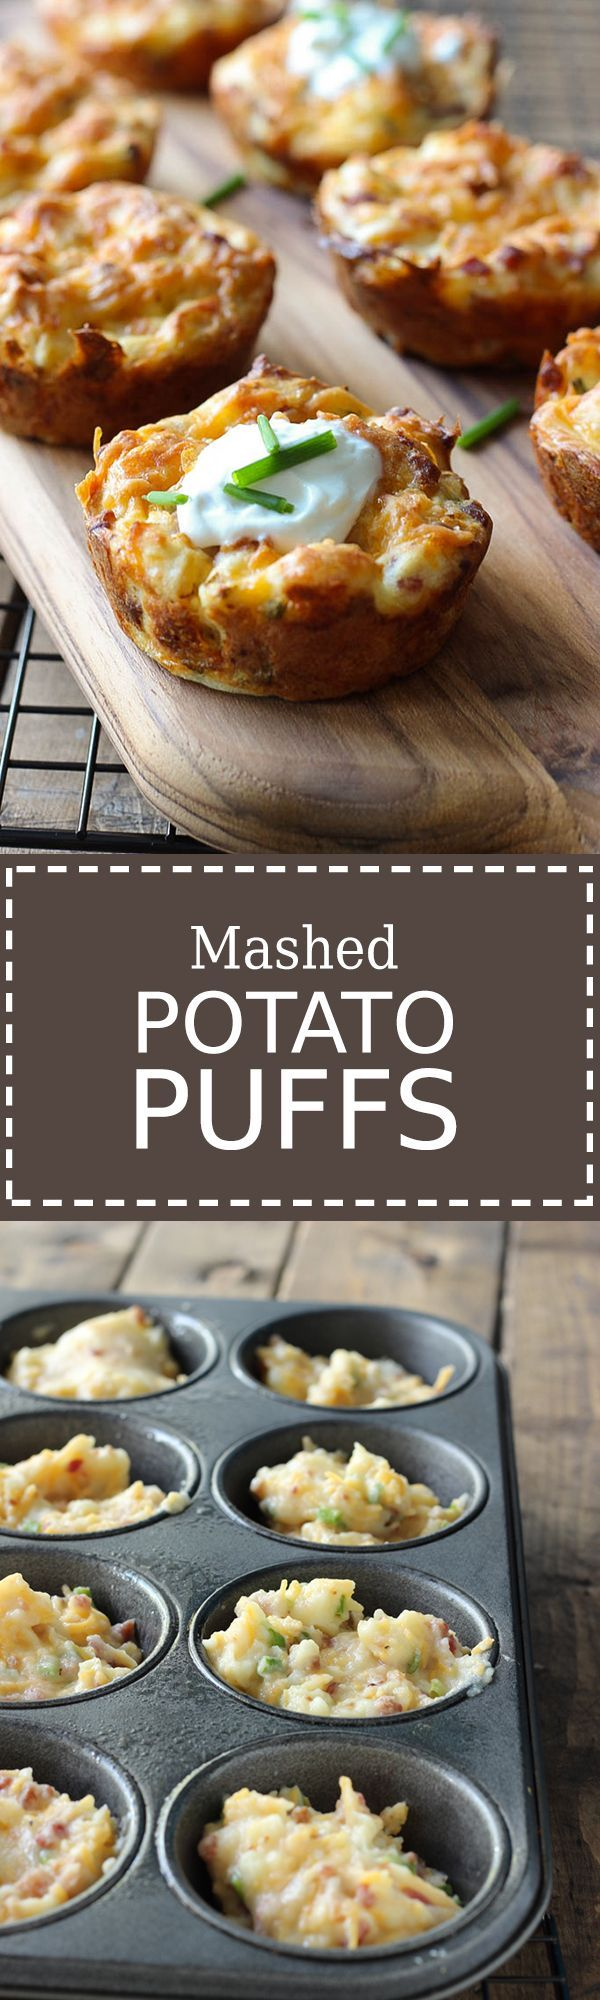 Work some magic on your mashed potatoes with mashed potato puffs! These loaded potato puffs will breathe some new life into your